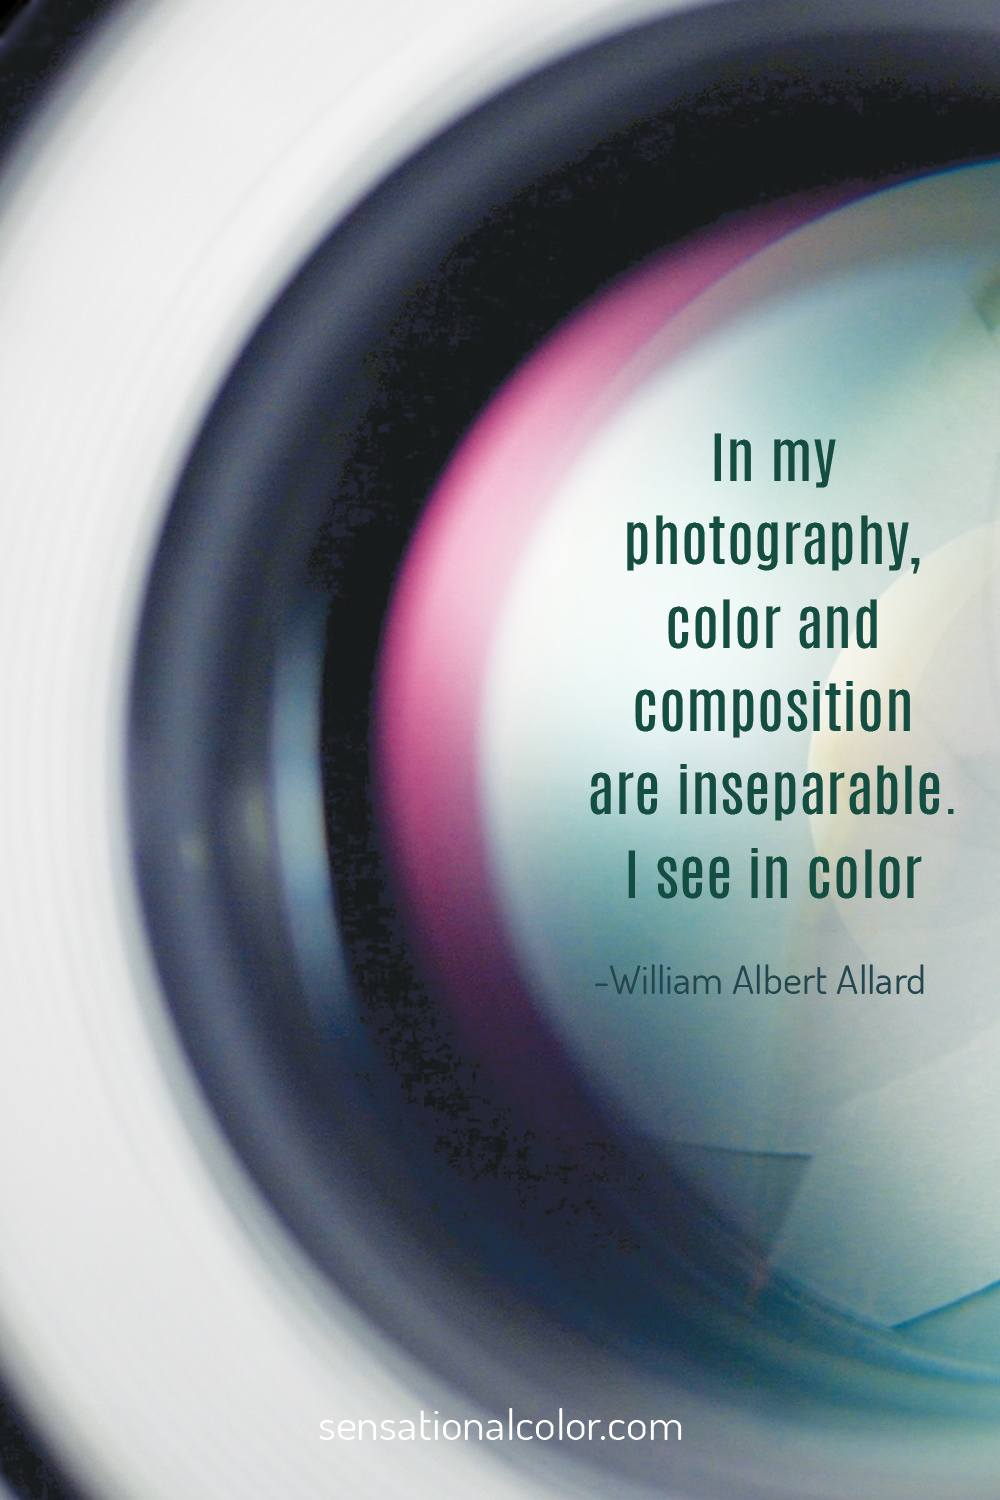 """In my photography, color and composition are inseparable. I see in color.""-William Albert Allard"